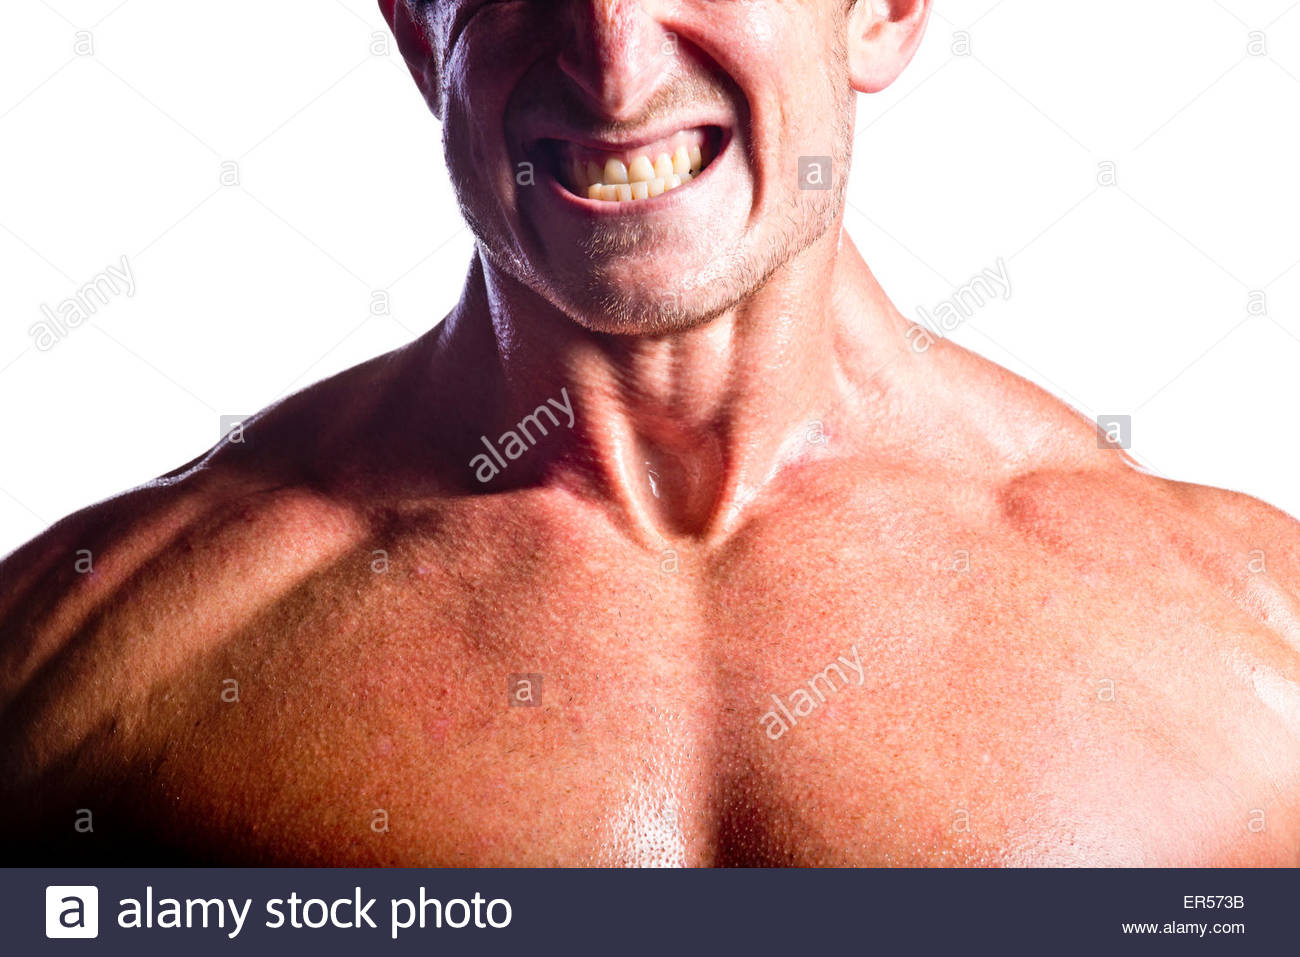 Close-up of a athletes face while he works out. - Stock Image